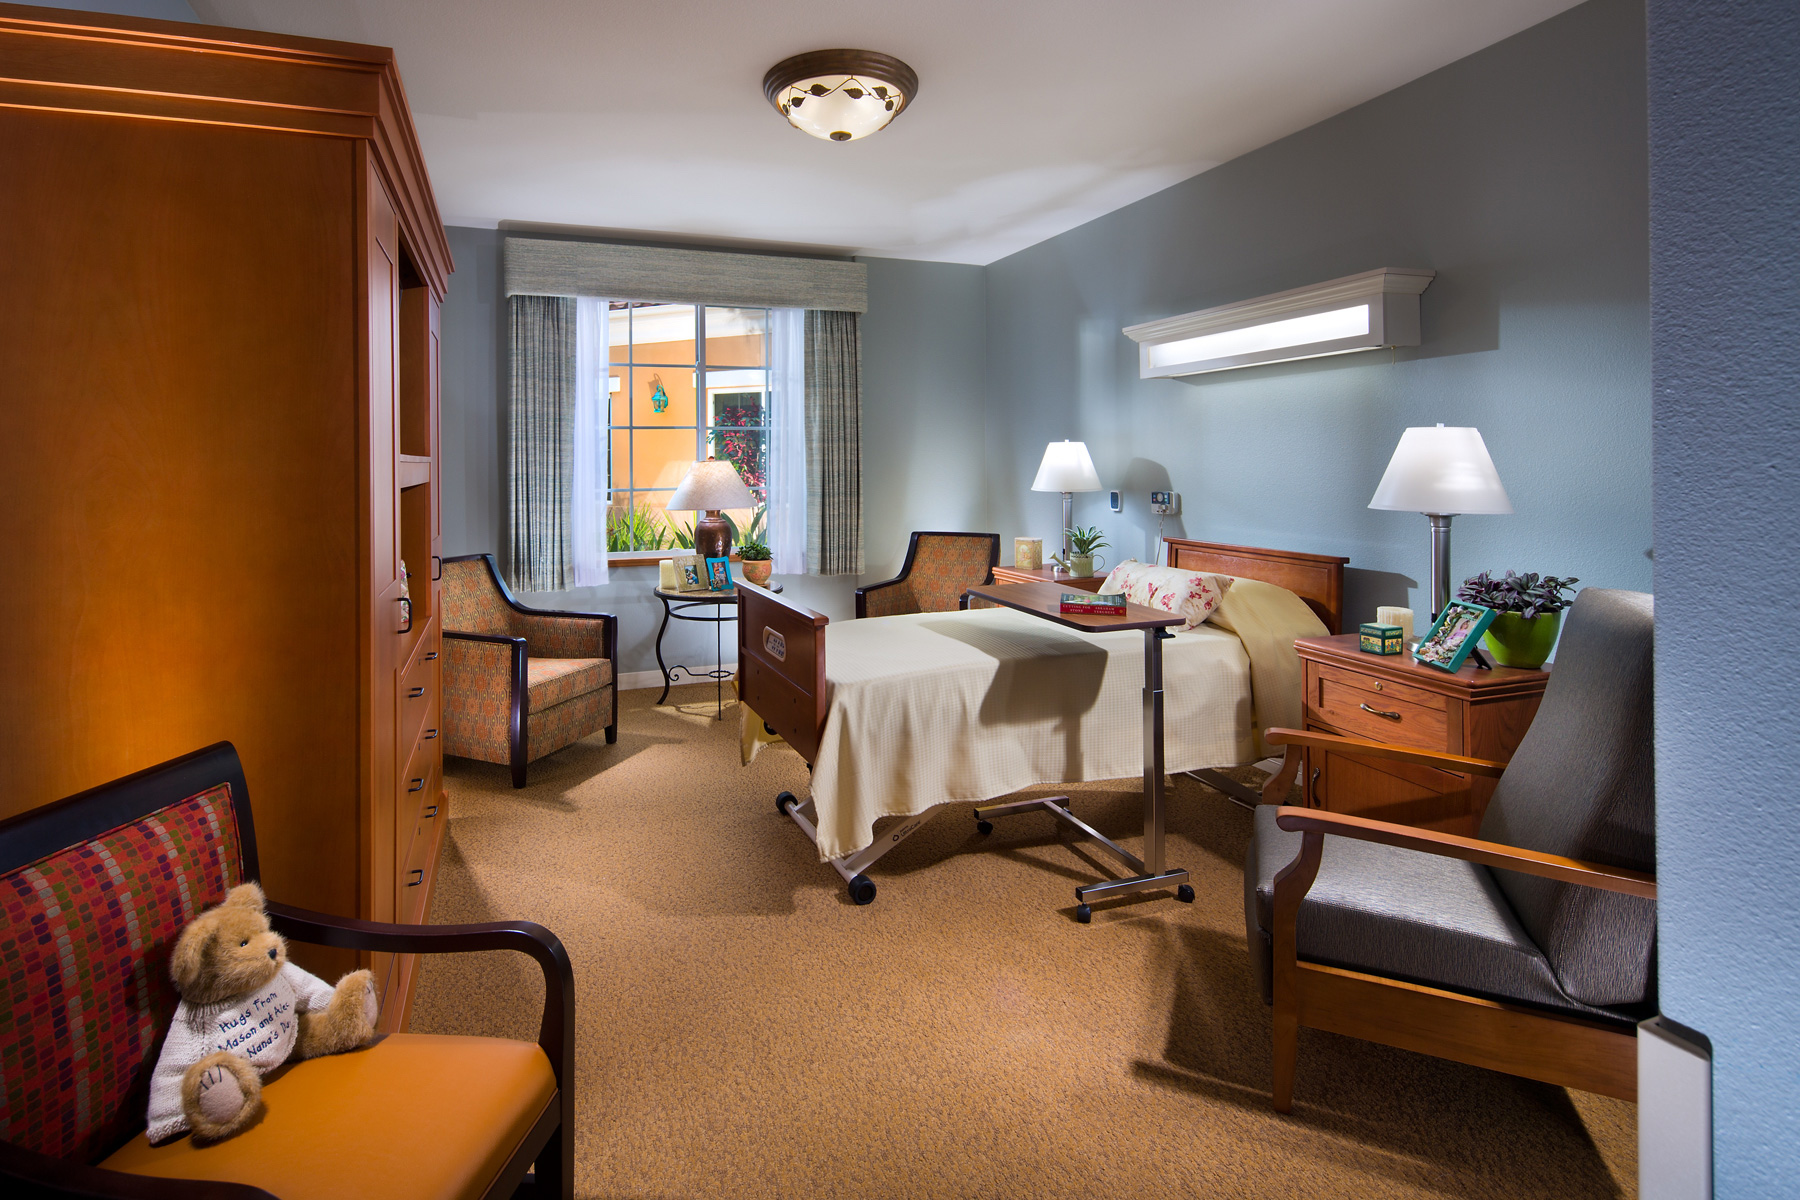 Resident room with seating options, a bed and large window.